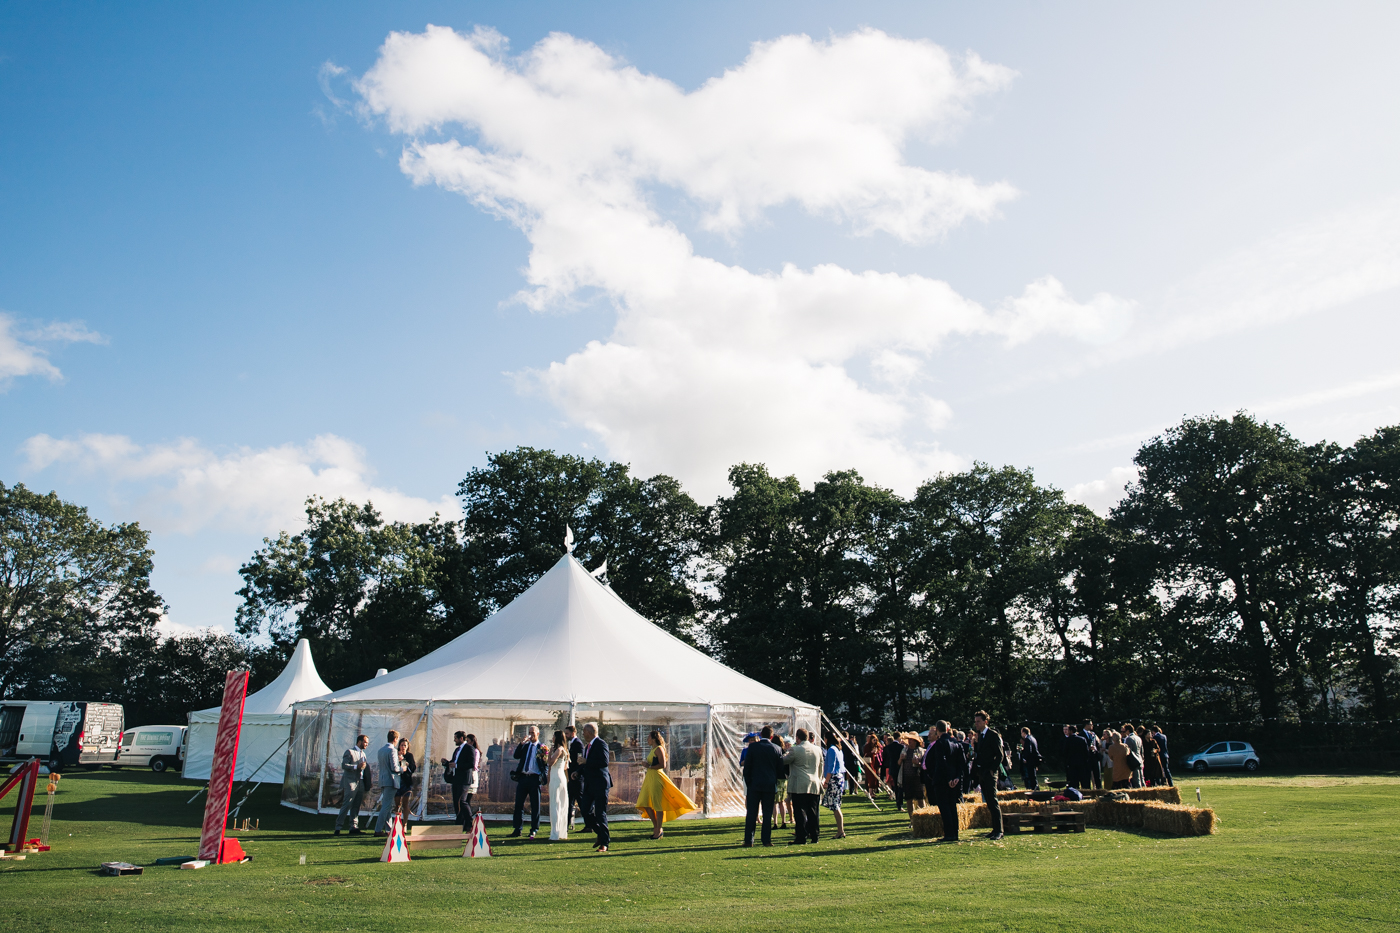 north-yorkshire-marquee-wedding-photographer-teesside-north-east-wedding-photography-0055.jpg